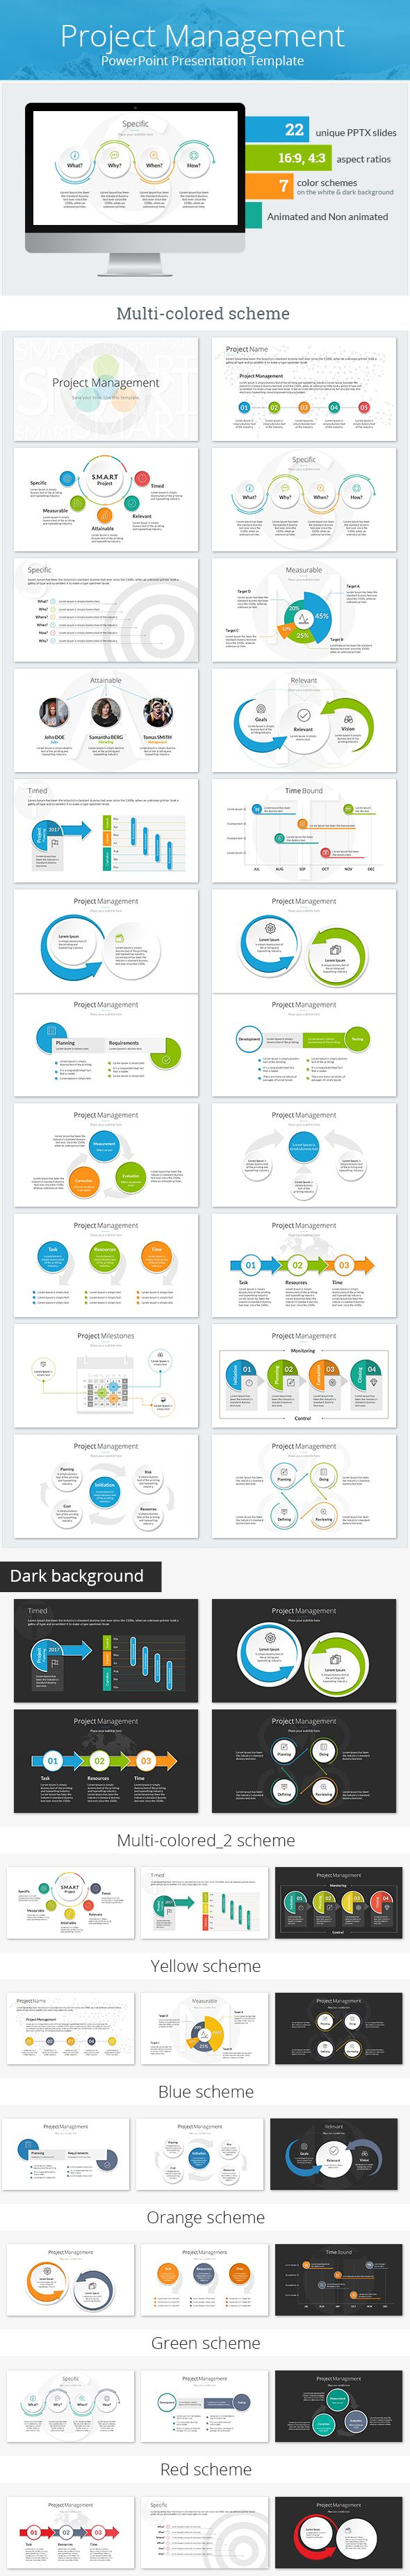 project management powerpoint presentation template powerpoint